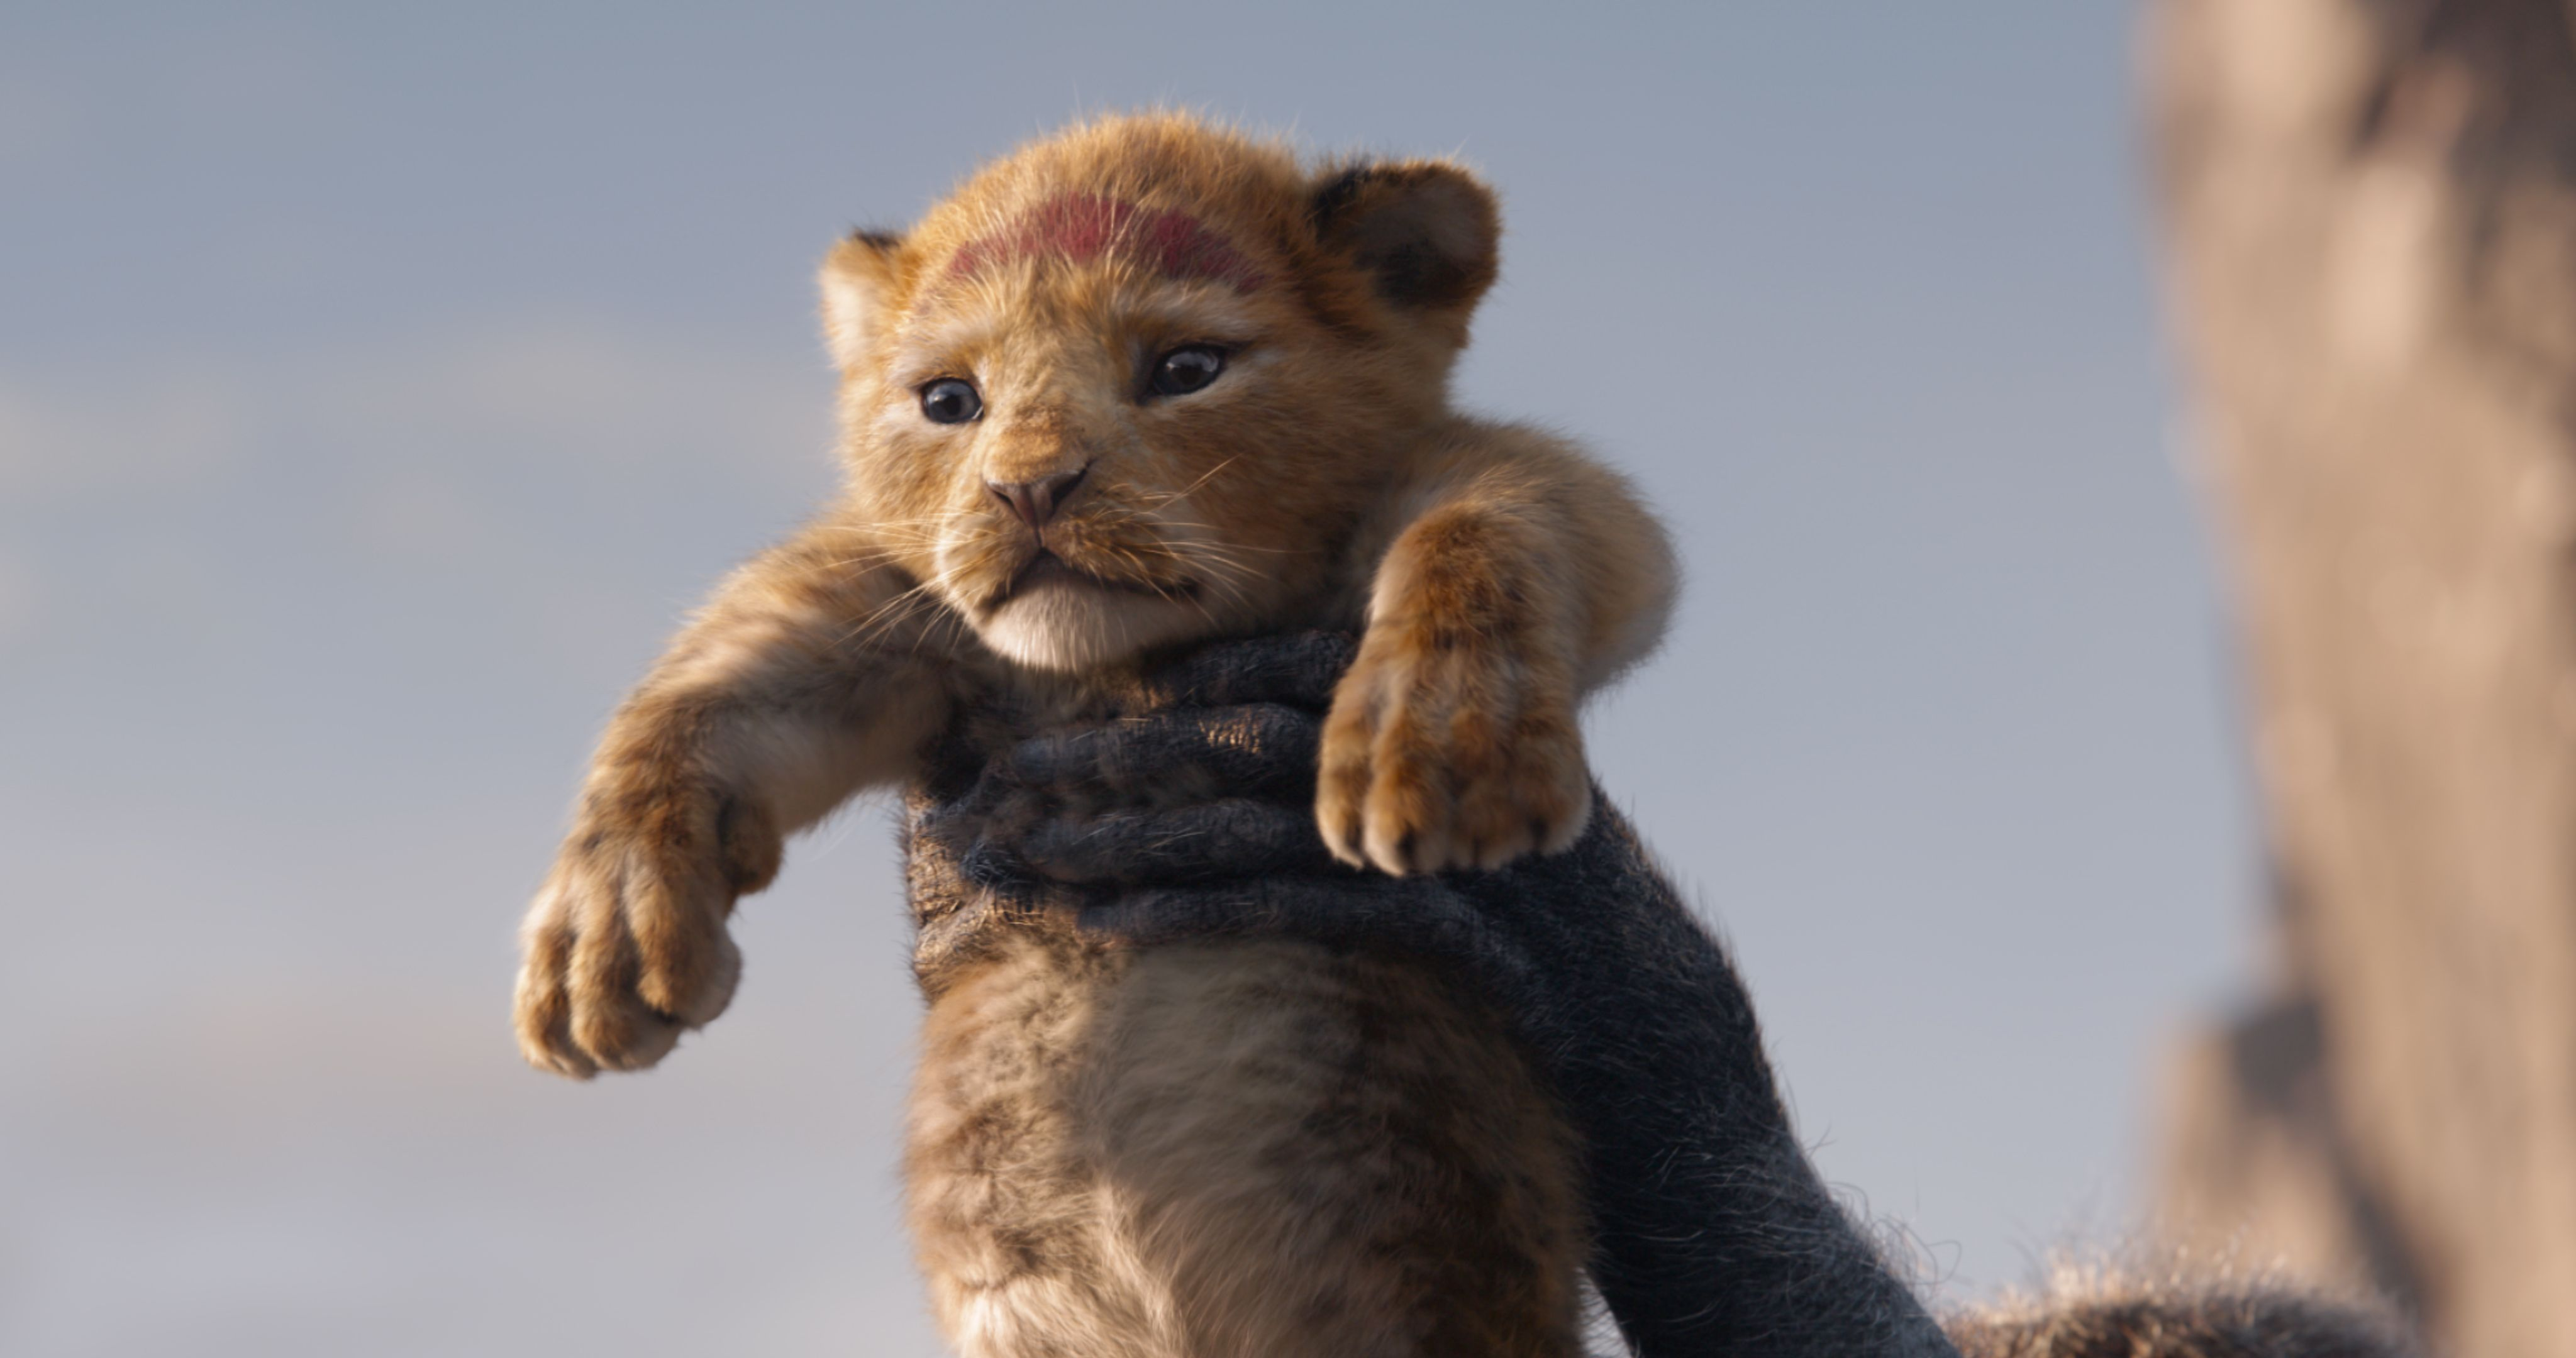 How The New Lion King Film Could Help The Real Life Lion Crisis